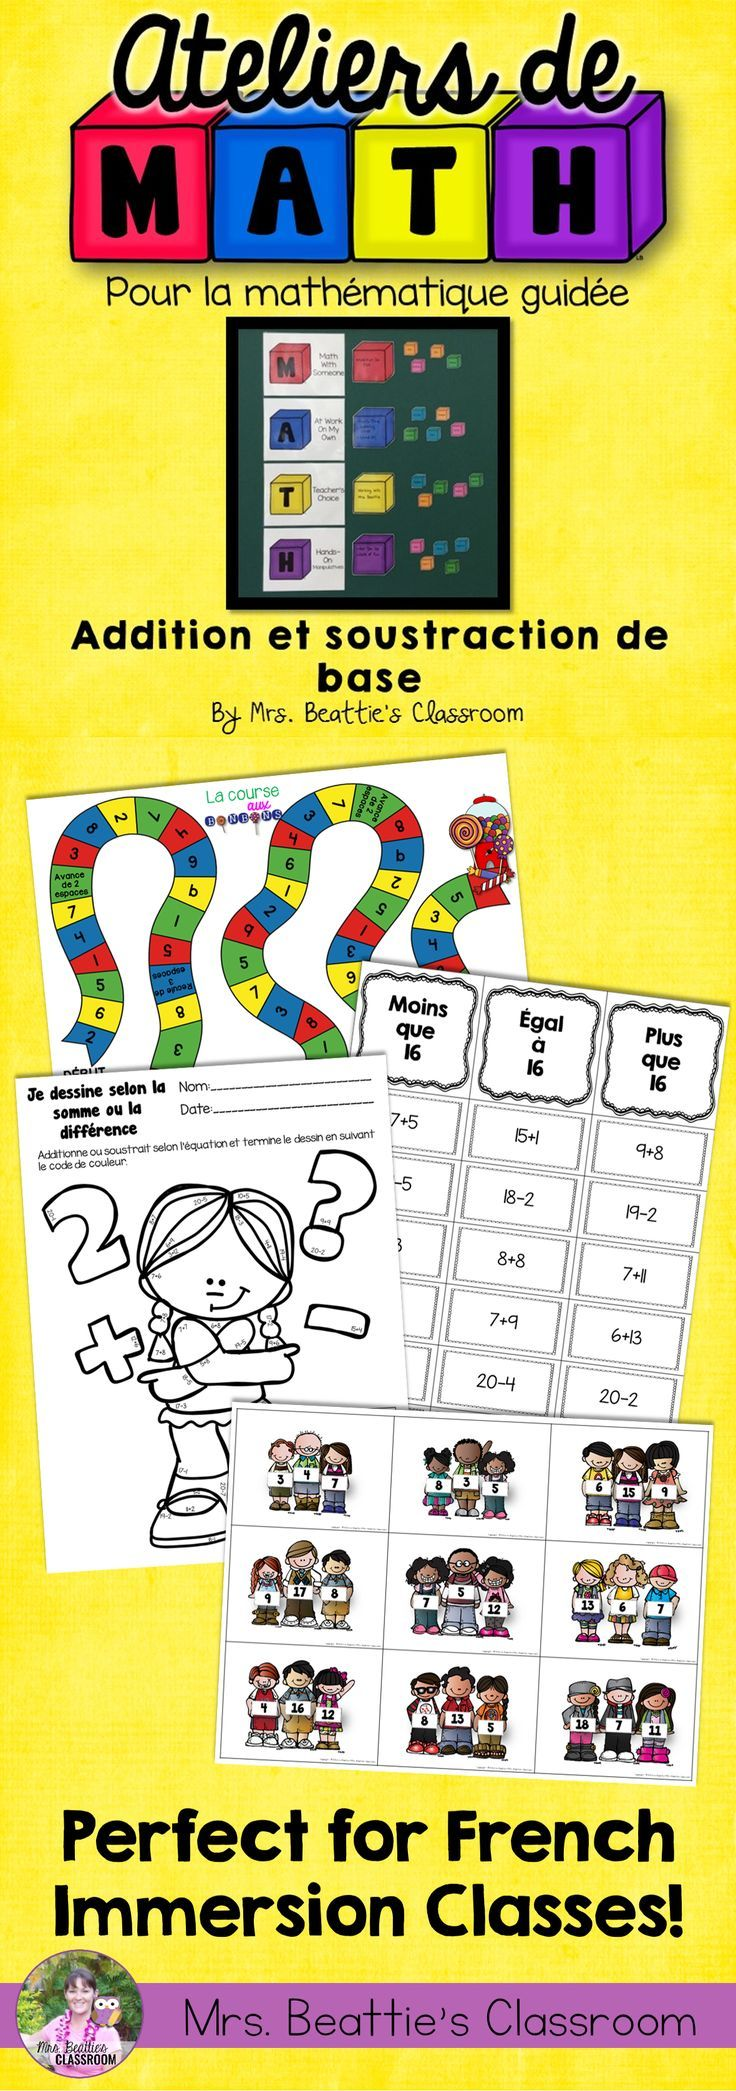 Using a Guided Math or Daily 5 Math approach in your classroom? This French Basic Addition and Subtraction resource from Mrs. Beattie's Classroom is for you! Just the right number of activities for a month of rotations! #guidedmath #enfrancais #french #mathcenters